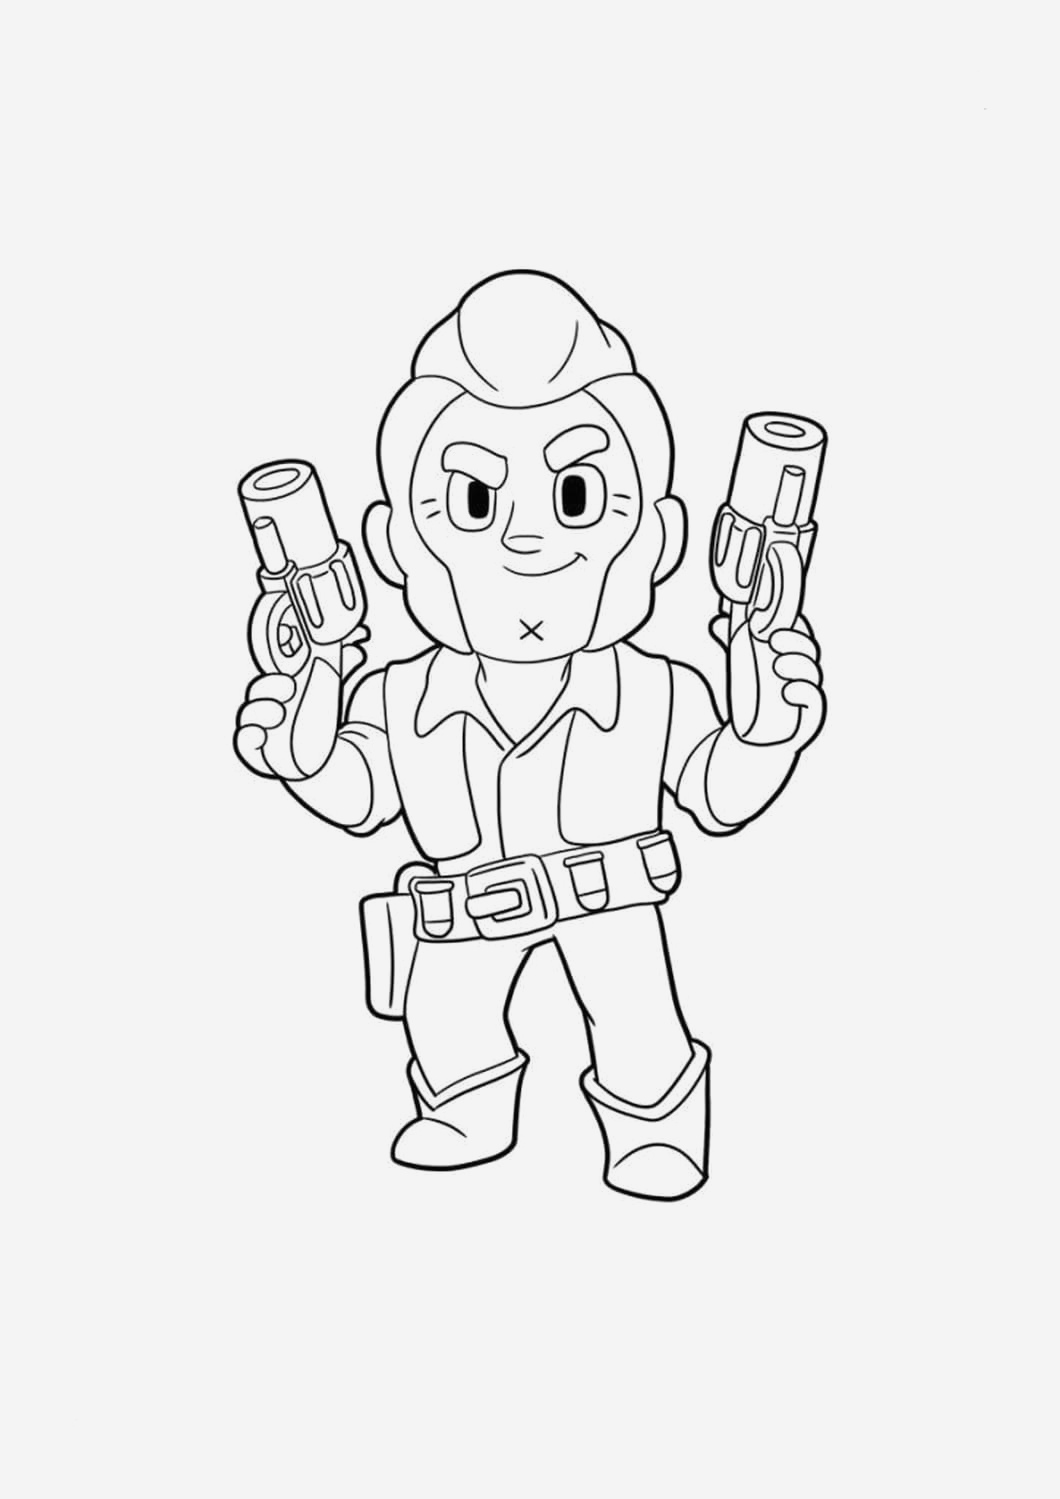 Coloriage Brawl Stars Corbac Inspirational Coloriage Brawl Stars Imprimer Gratuitement 100 Images Of Coloriage Brawl Stars Corbac